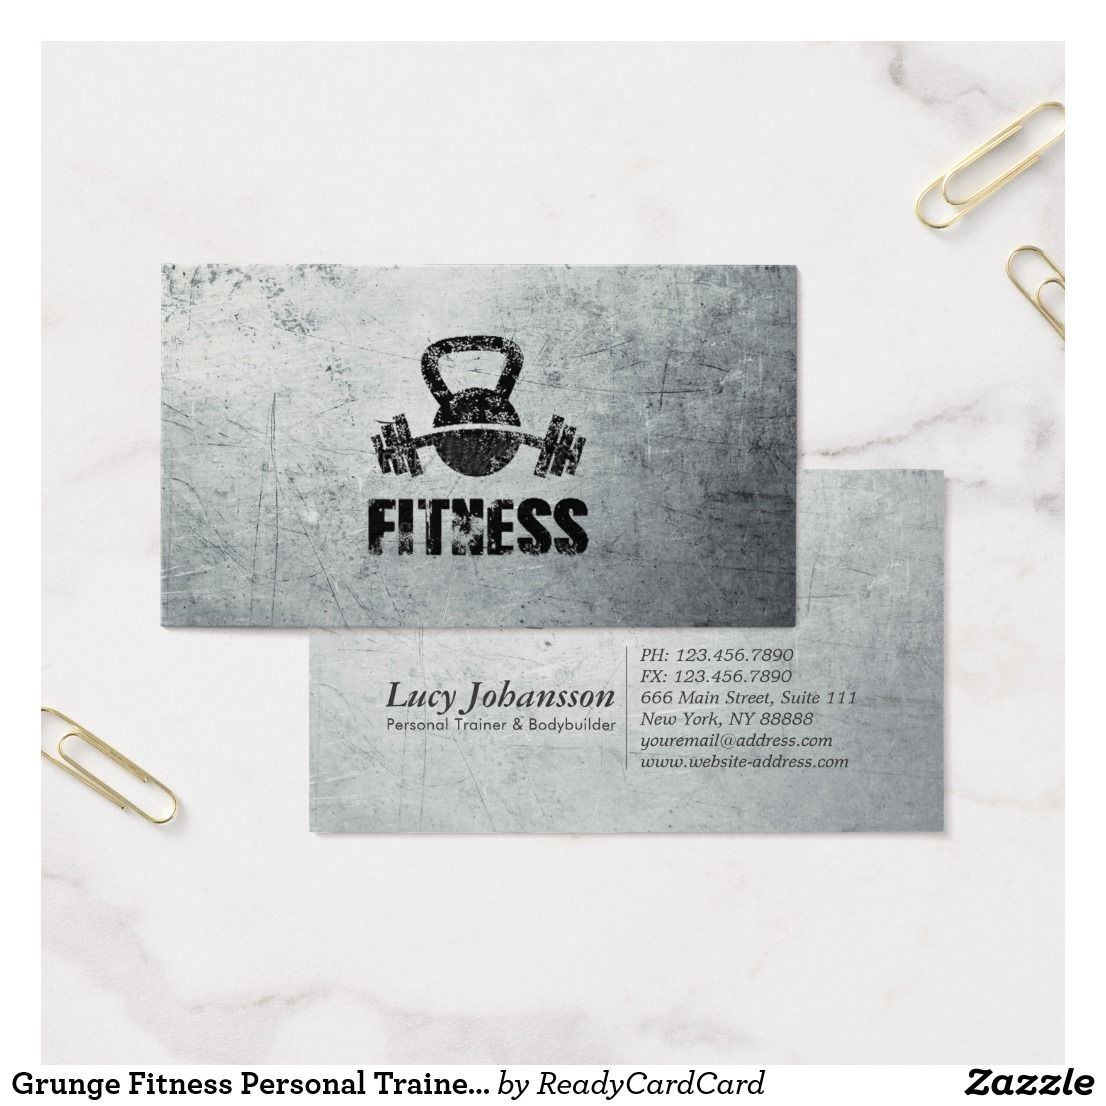 Grunge Fitness Personal Trainer Kettlebell Barbell Business Card ...